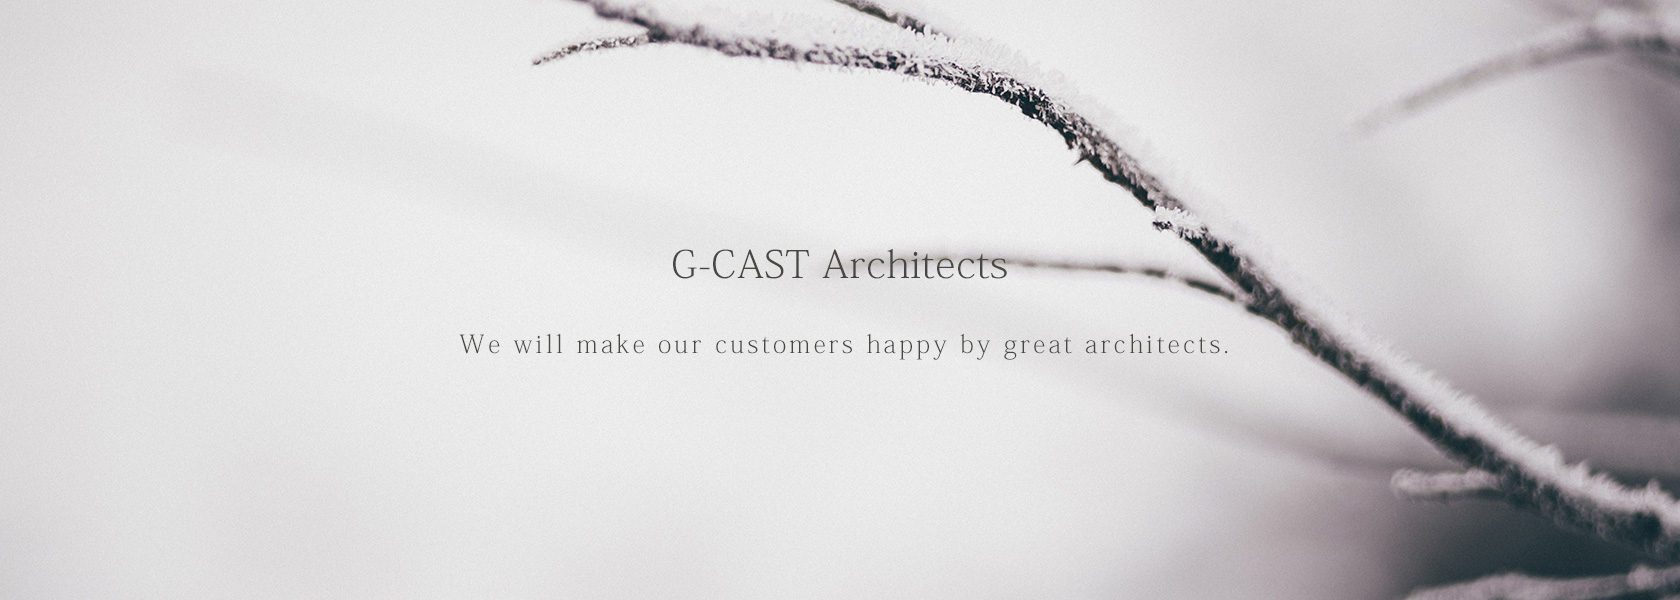 G- CAST Architects